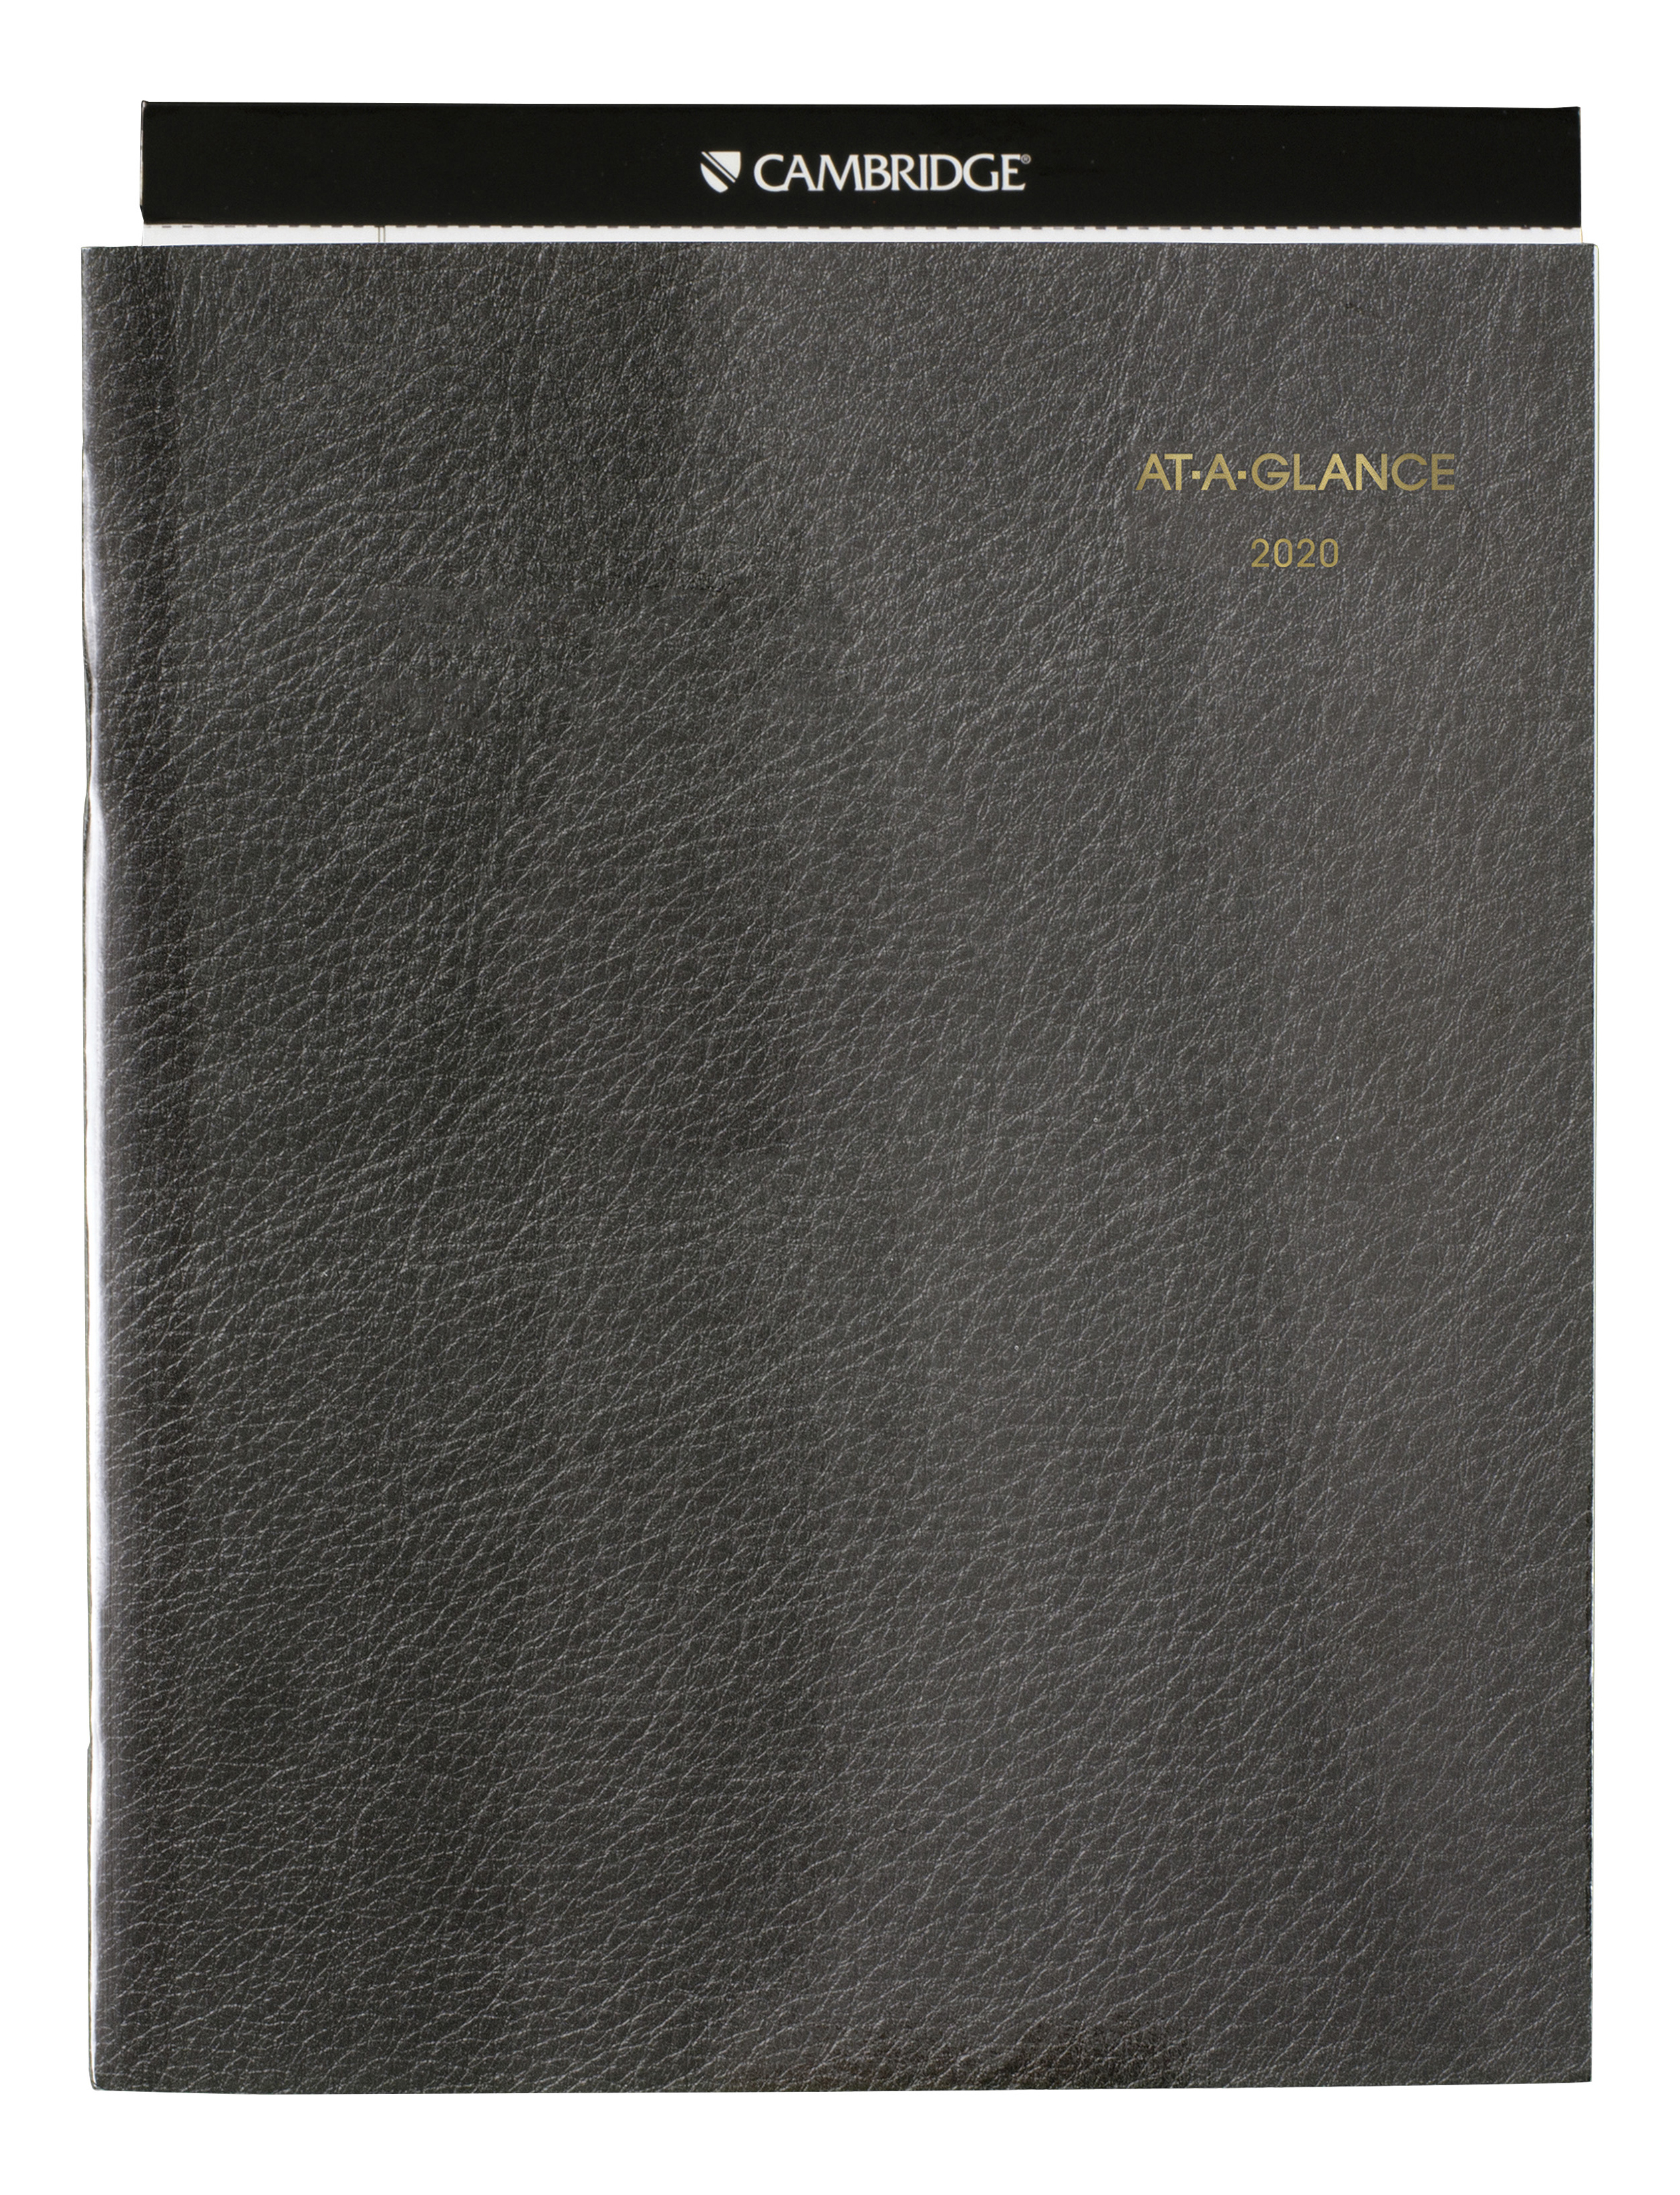 """AT-A-GLANCE® Executive 13-Month Monthly Padfolio Refill, 11"""" x 9"""", 30% Recycled, January 2020 To January 2021, AAG70909"""